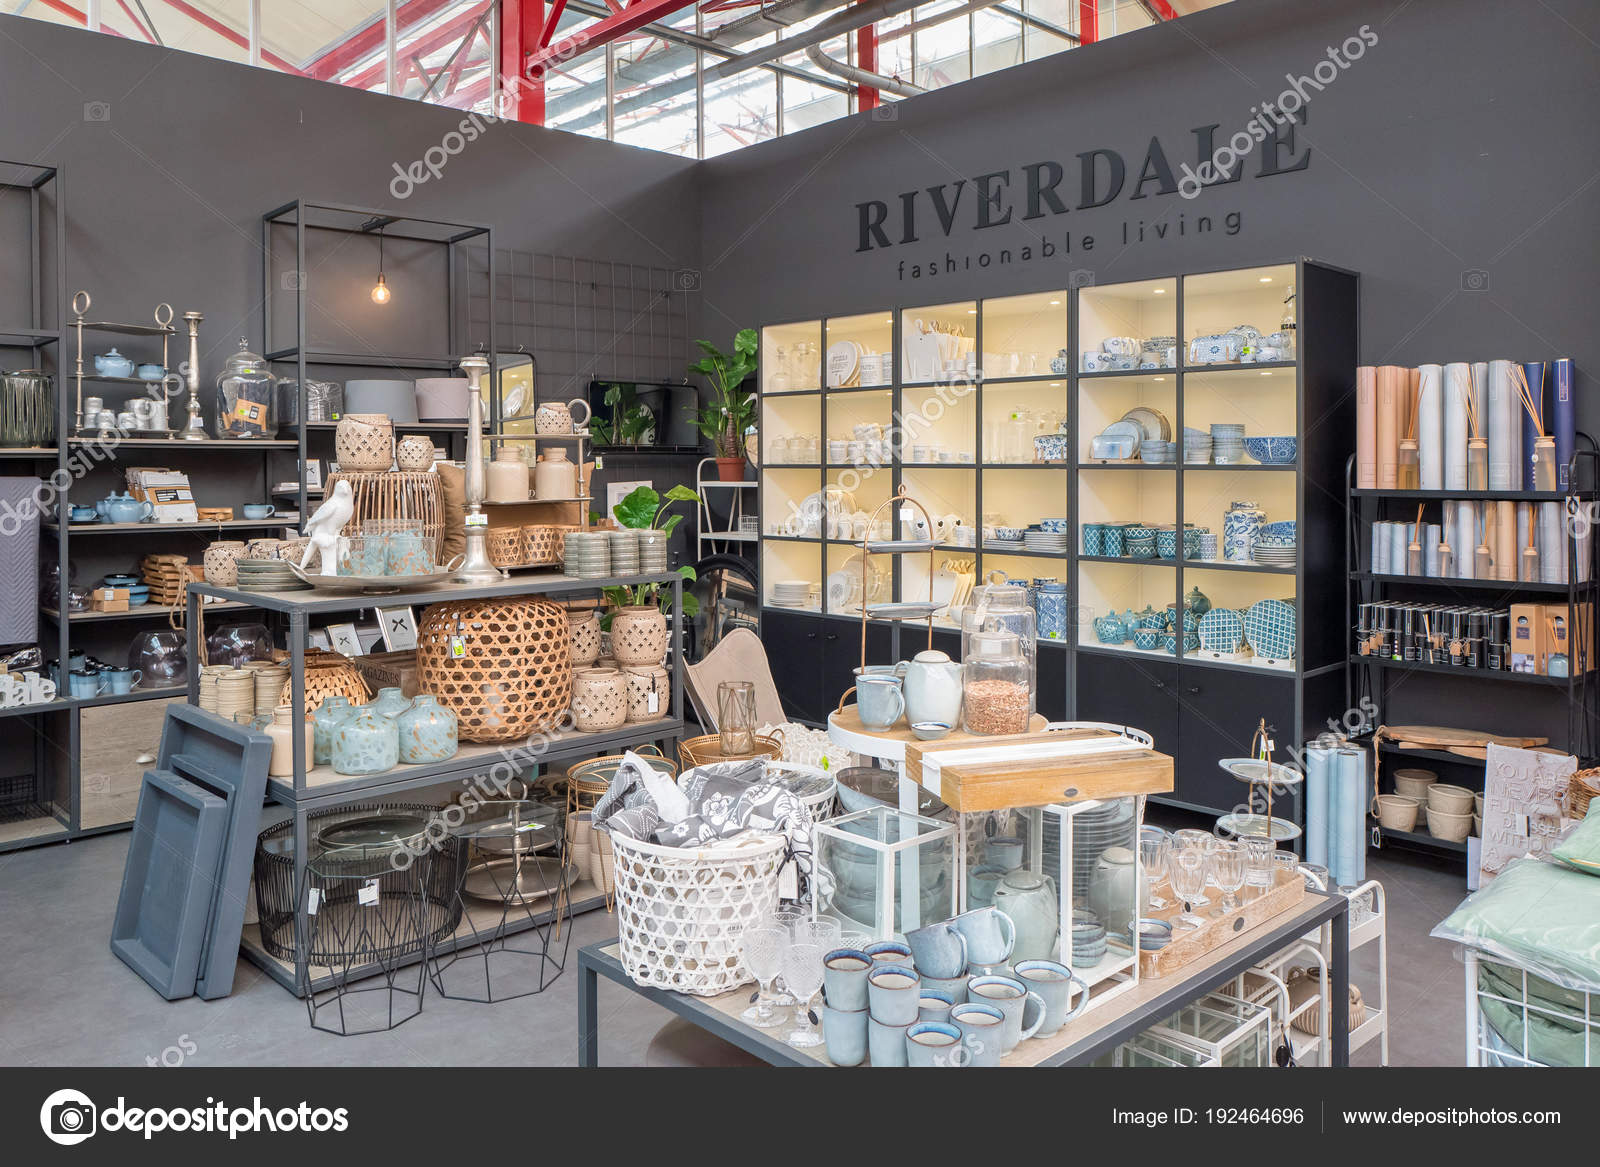 Welp Riverdale fashionable living products in a Intratuin plant center LE-75